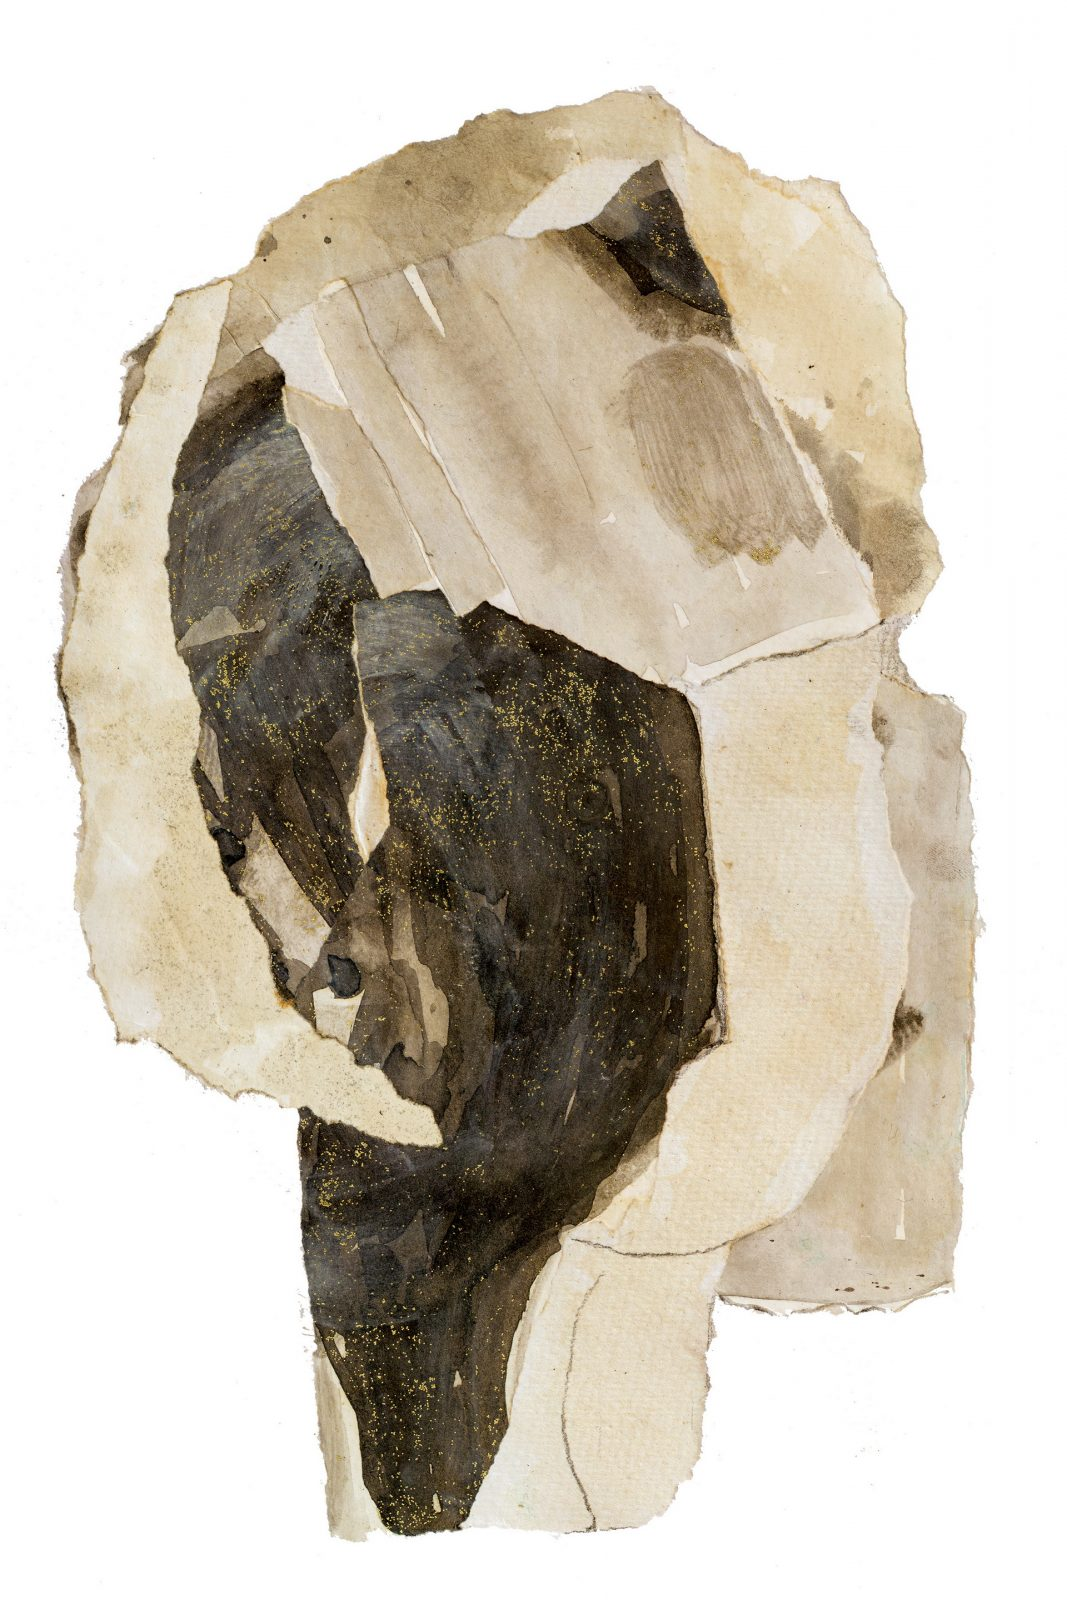 Commission Abstract Portrait Art head face in beige and brown